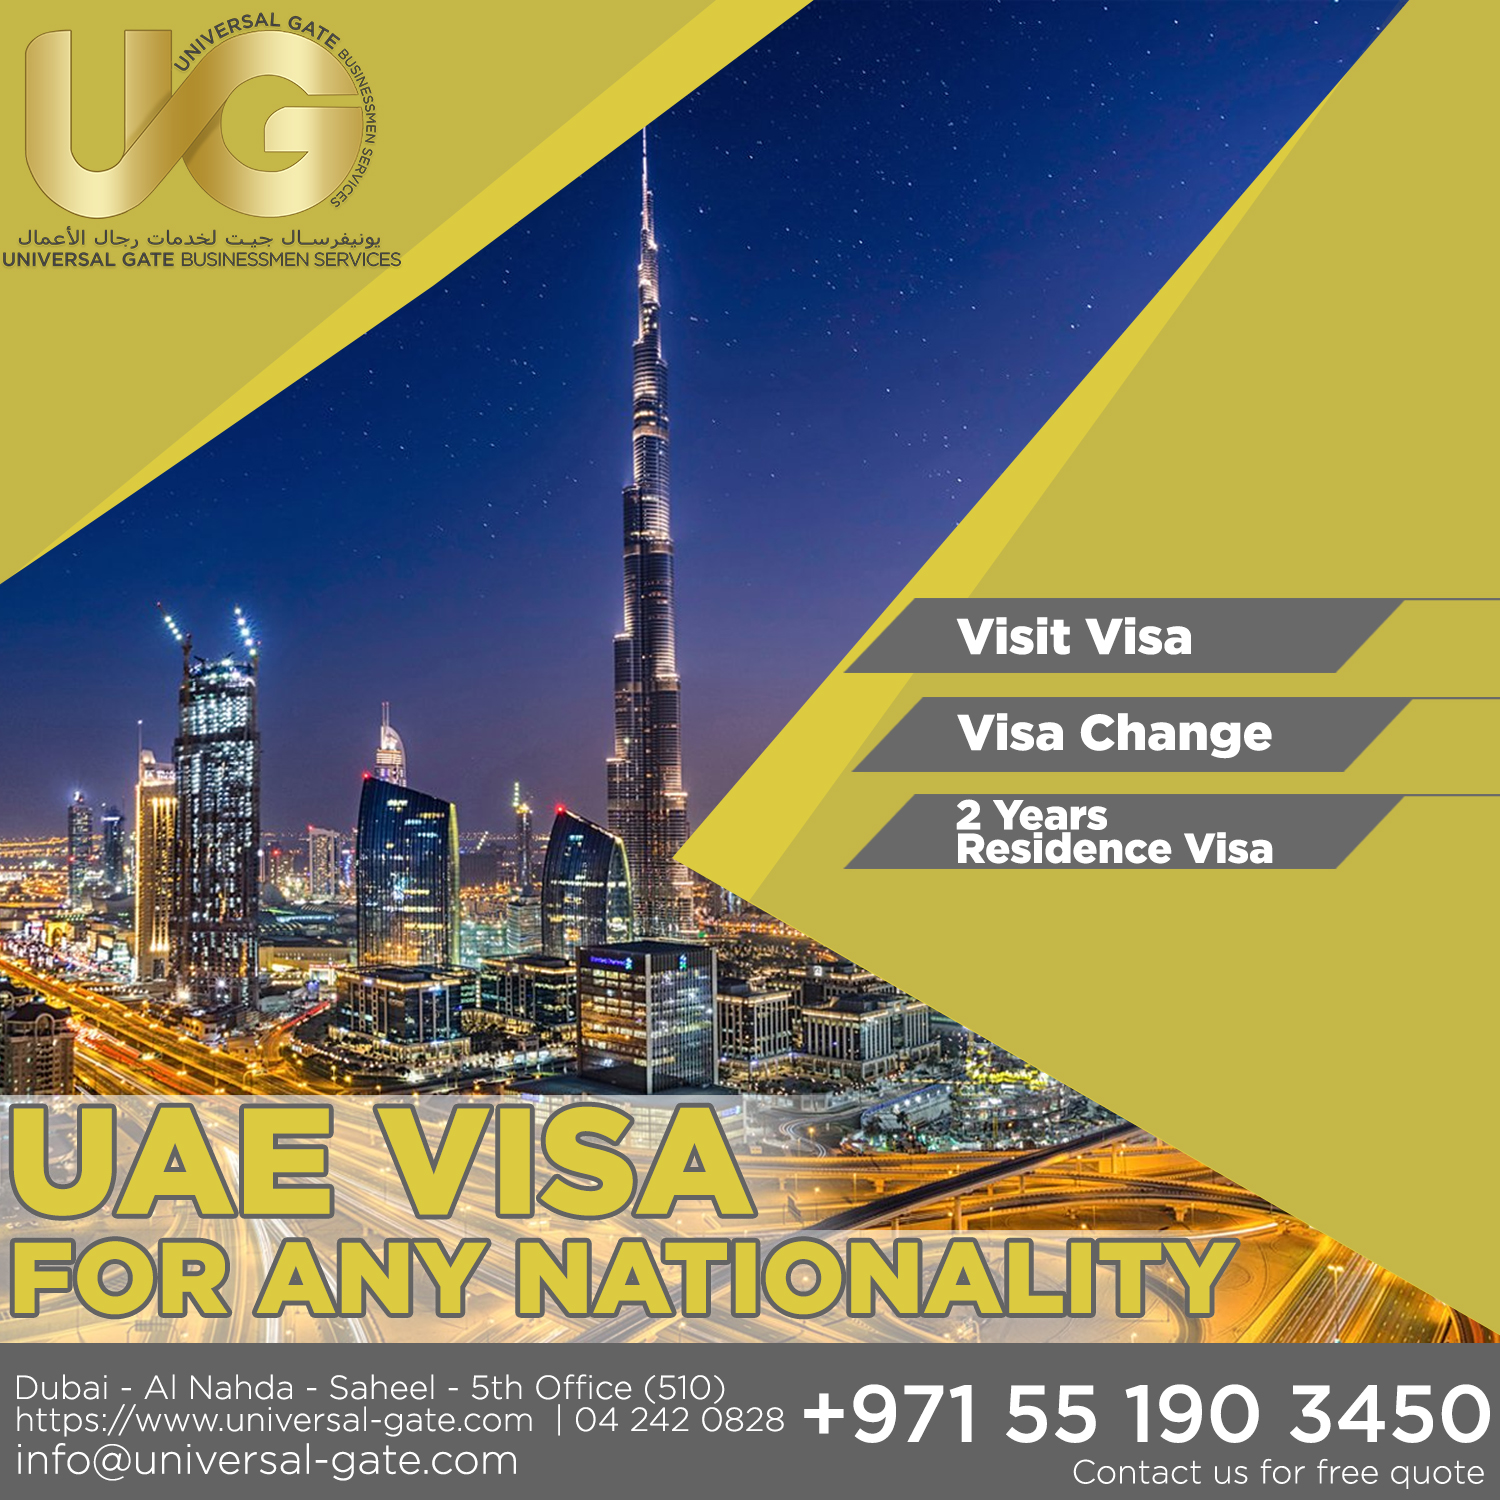 UAE VISA FOR ANY NATIONALITY